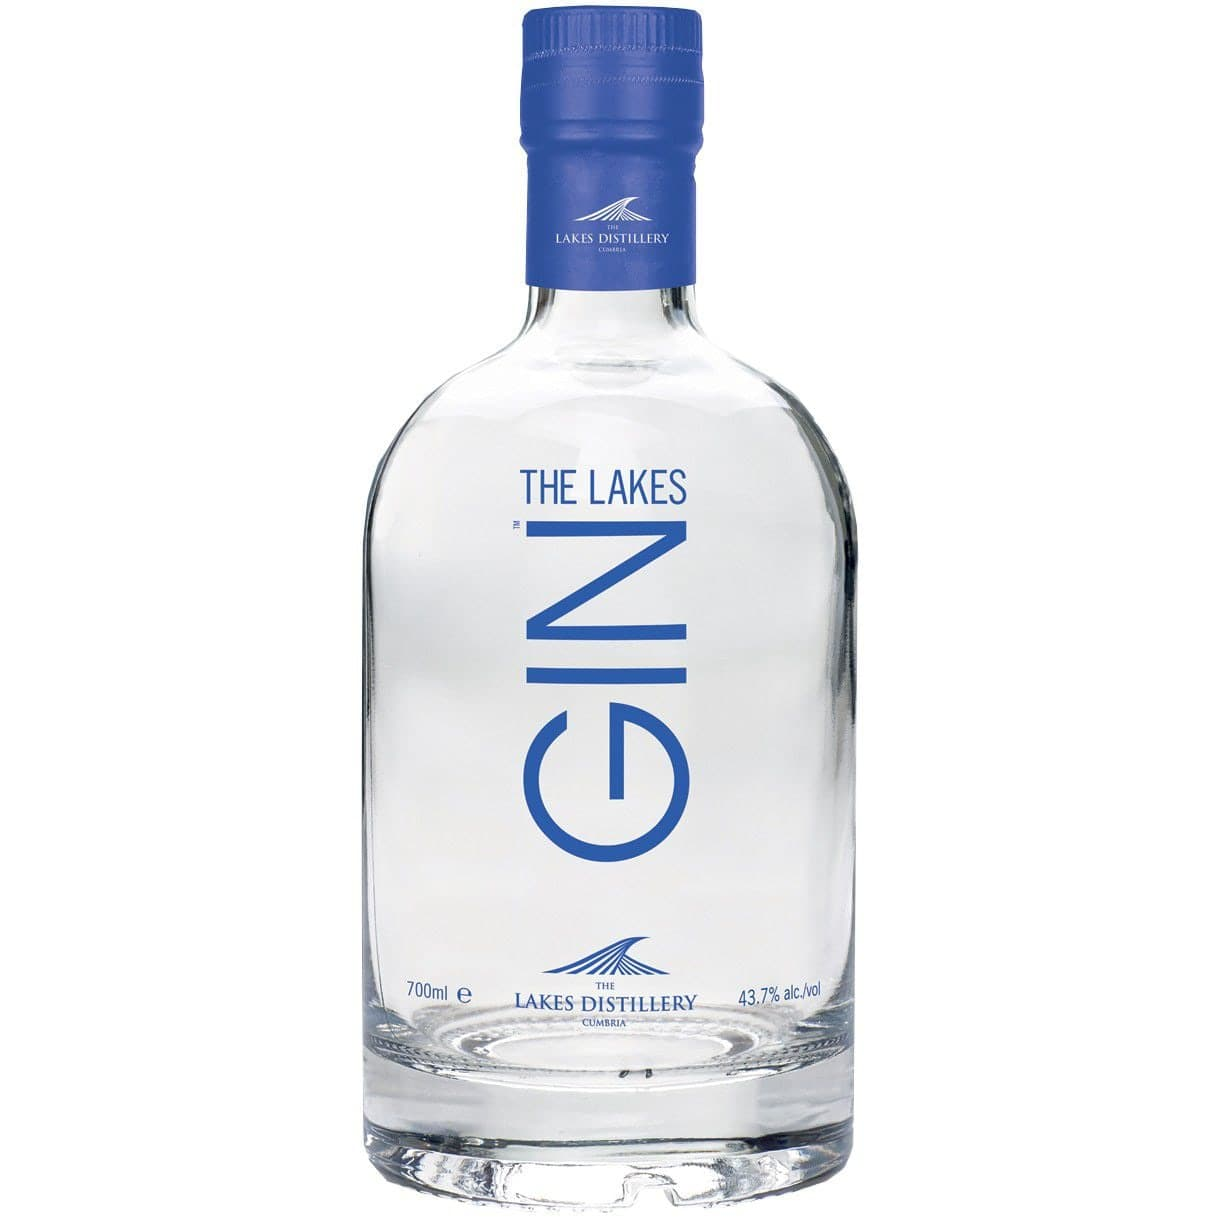 The Lakes Gin by The Lakes Distillery